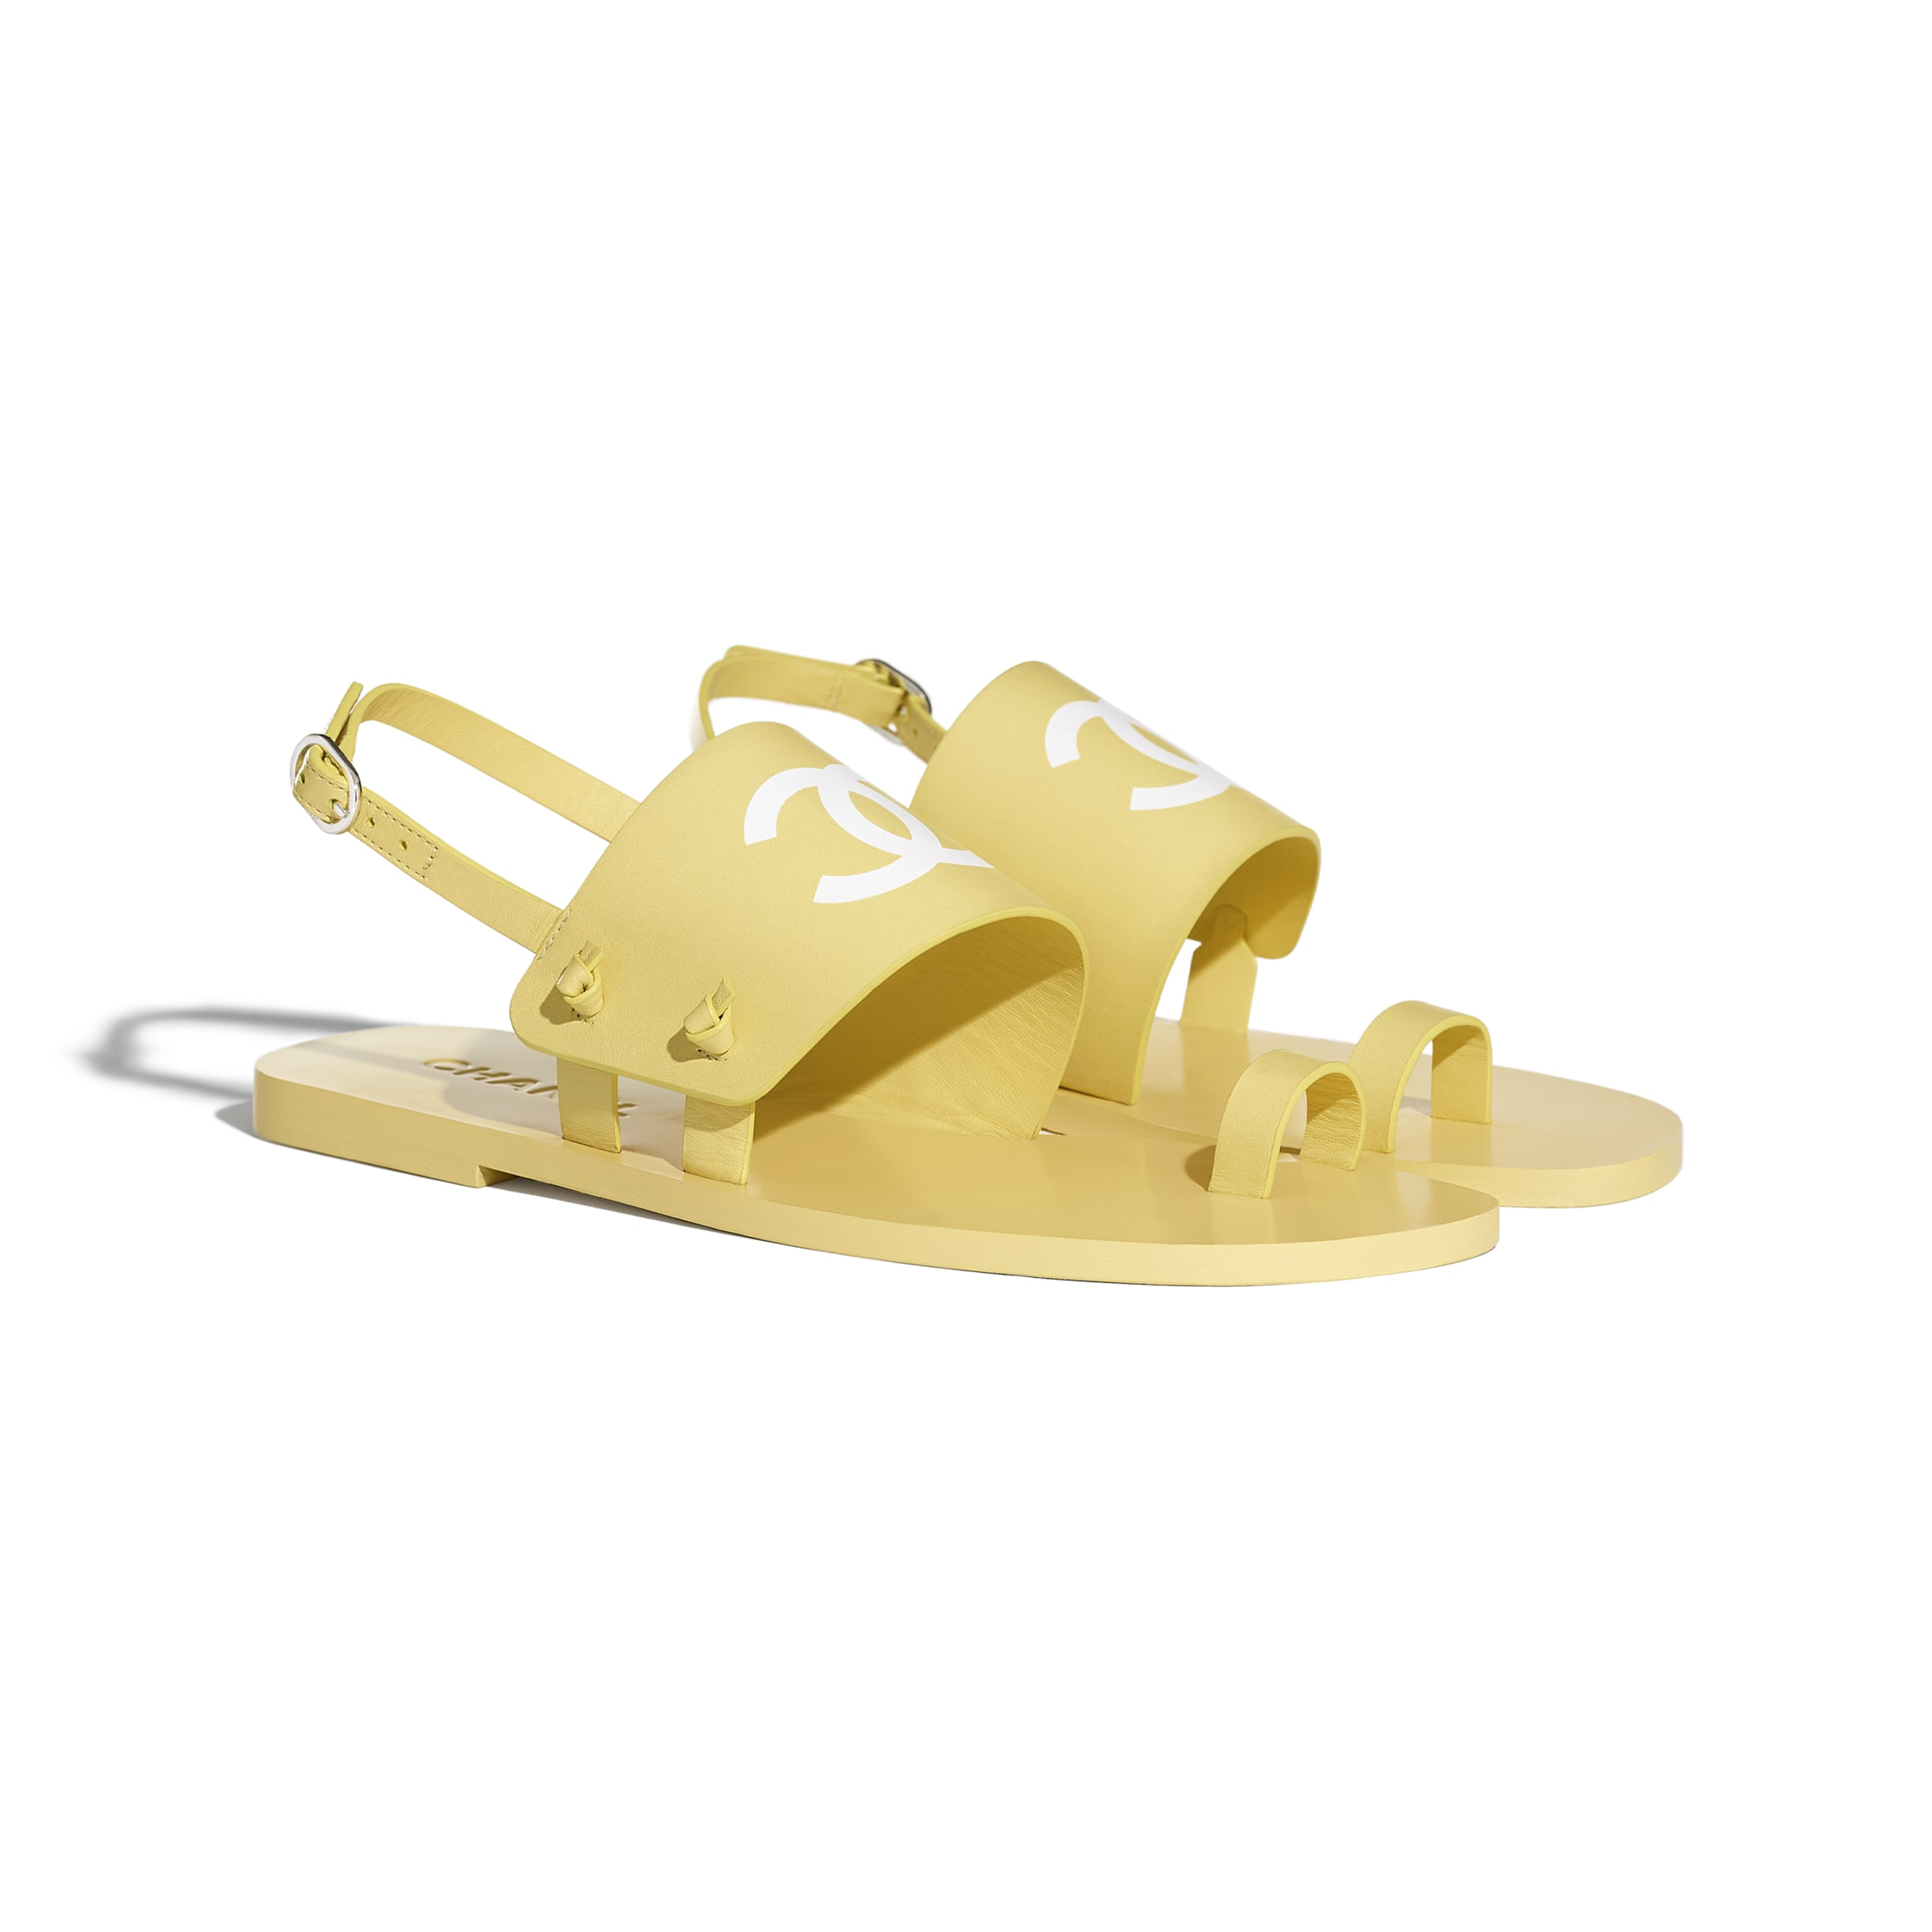 Sandals - Yellow - Goatskin - CHANEL - Alternative view - see standard sized version